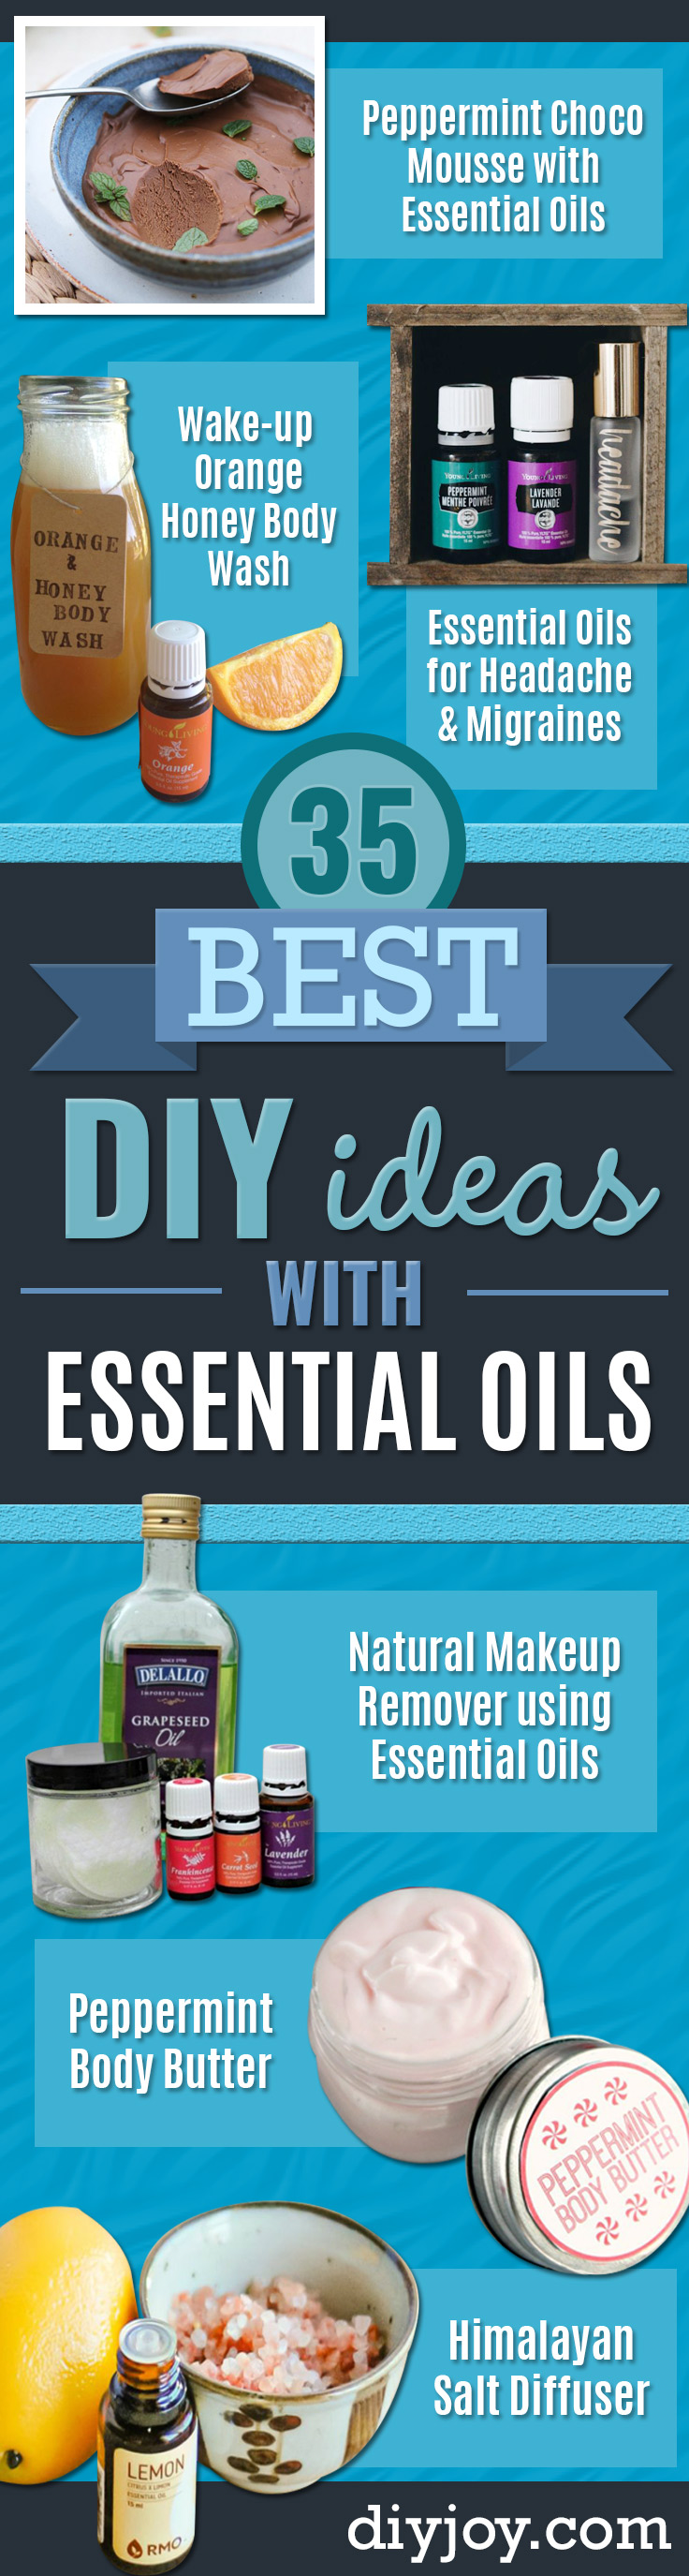 DIY Essential Oil Recipes and Ideas - Cool Recipes, Crafts and Home Decor to Make With Essential Oil - Diffuser Projects, Roll On Prodicts for Skin - Recipe Tutorials for Cleaning, Colds, For Sleep, For Hair, For Paint, For Weight Loss http://diyjoy.com/diy-ideas-essential-oils